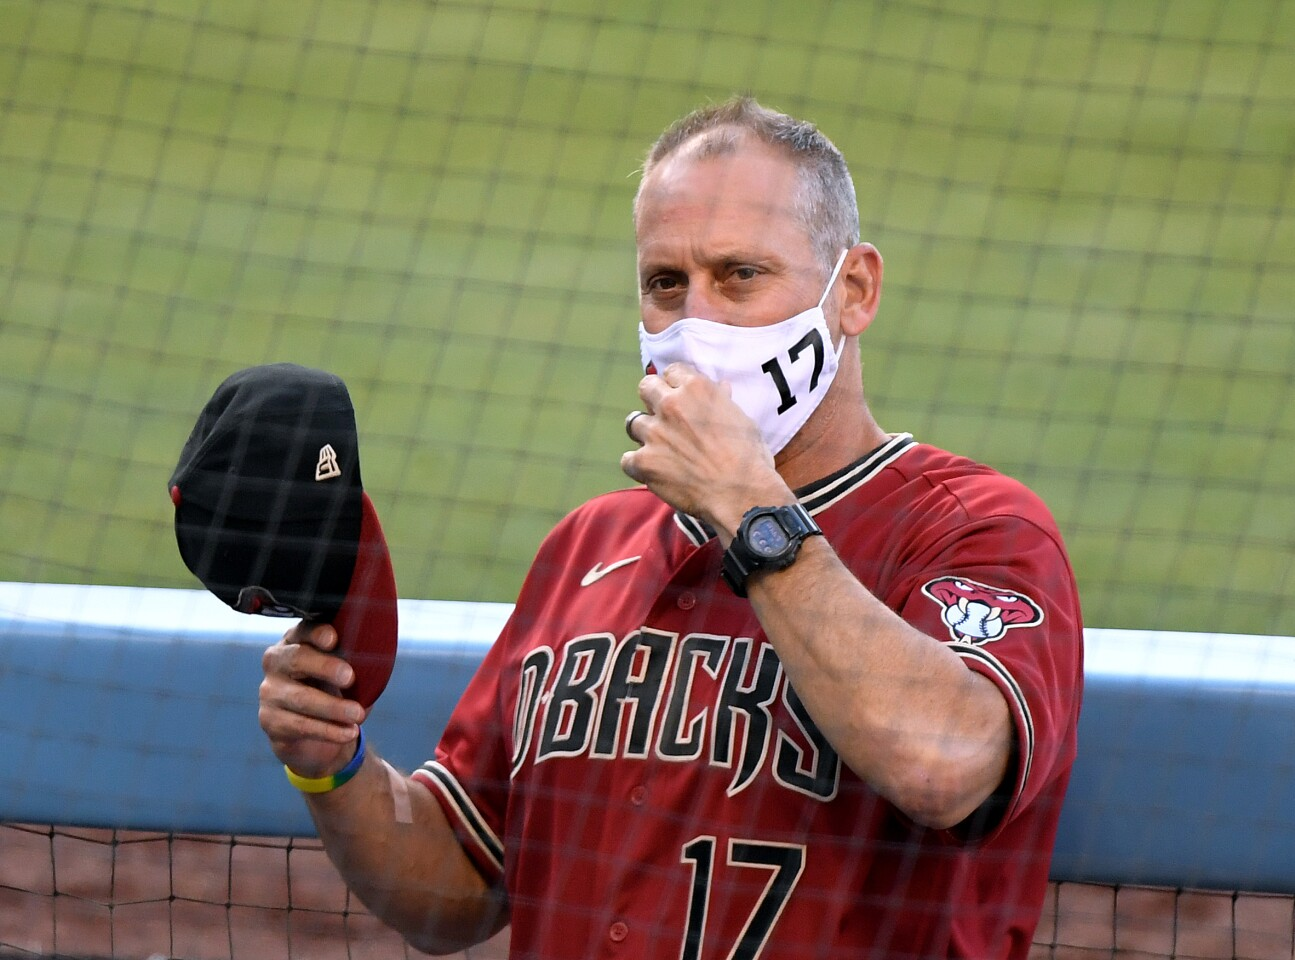 LOS ANGELES, CALIFORNIA - JULY 20: Manager Torey Lovullo #17 of the Arizona Diamondbacks adjust his mask in the dugout before a preseason game the Los Angeles Dodgers during the coronavirus (COVID-19) pandemic at Dodger Stadium on July 20, 2020 in Los Angeles, California. (Photo by Harry How/Getty Images)